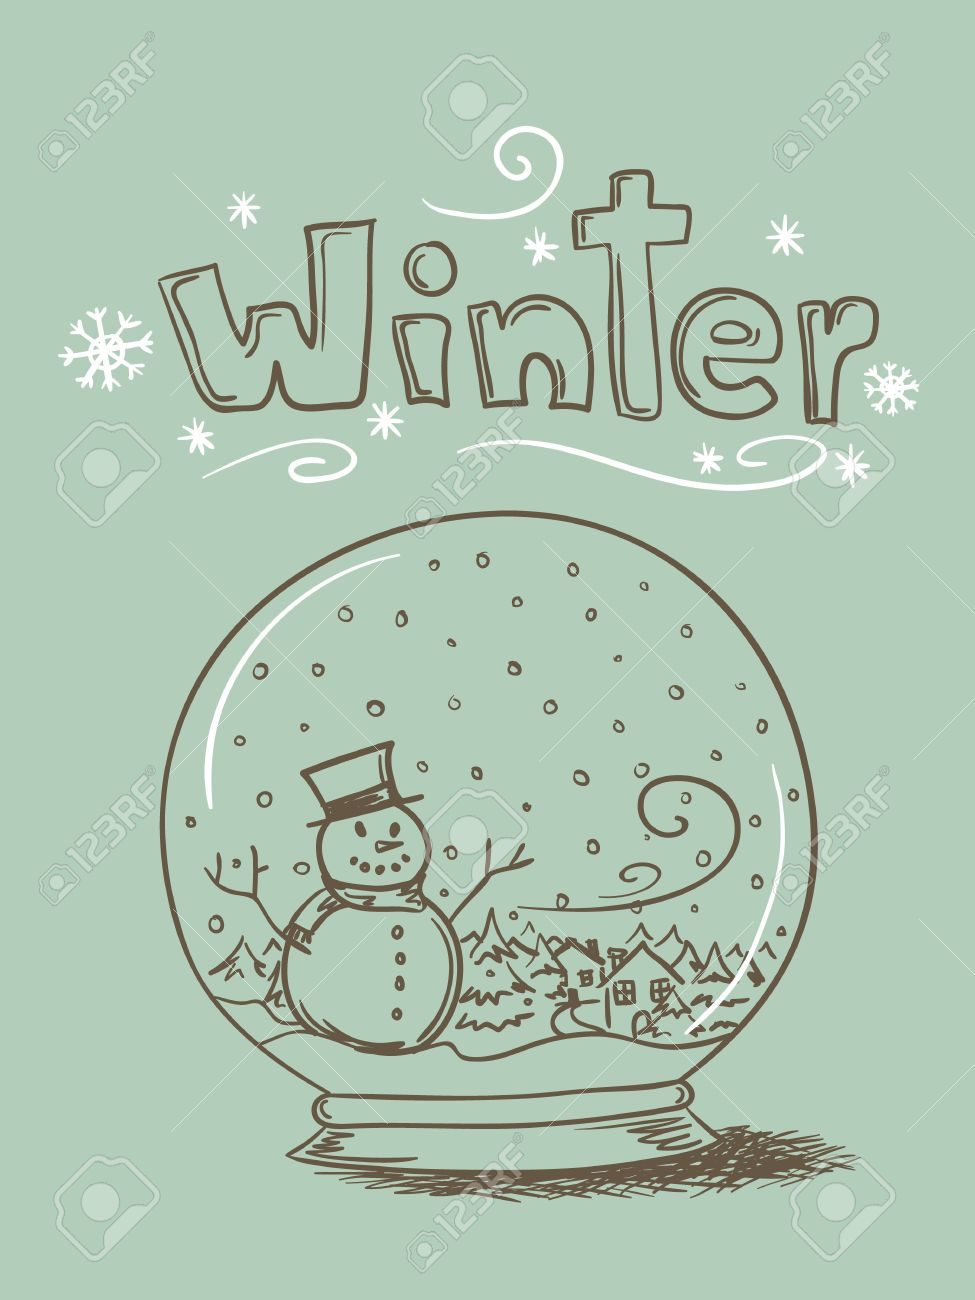 Hand drawn snow globe with snowman and trees and - 11276996